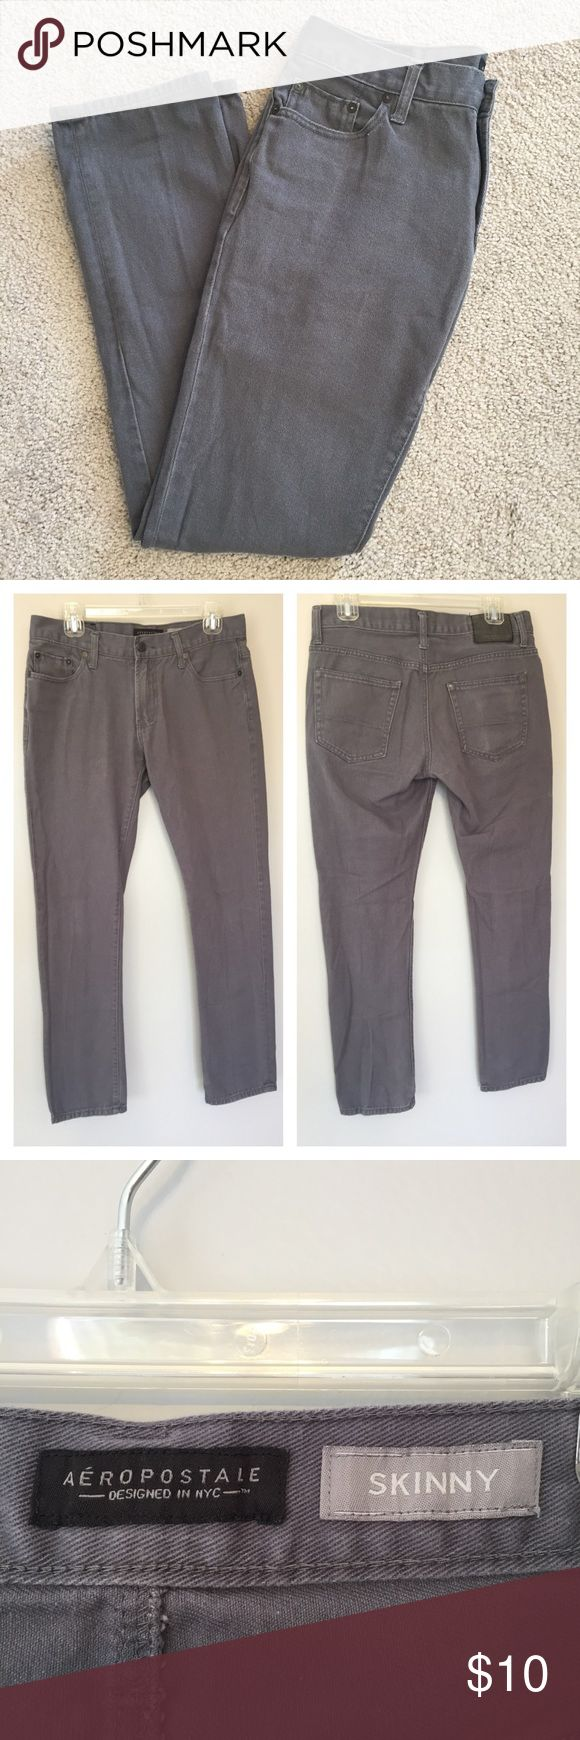 """Aeropostale Grey Skinny Jeans Good Condition Denim Jeans. Aeropostale patch on back is a little worn. No rips, stains, or tears. Size 30/32. Laying flat measurements: waist: 16"""", inseam: 30"""" Aeropostale Jeans Skinny"""